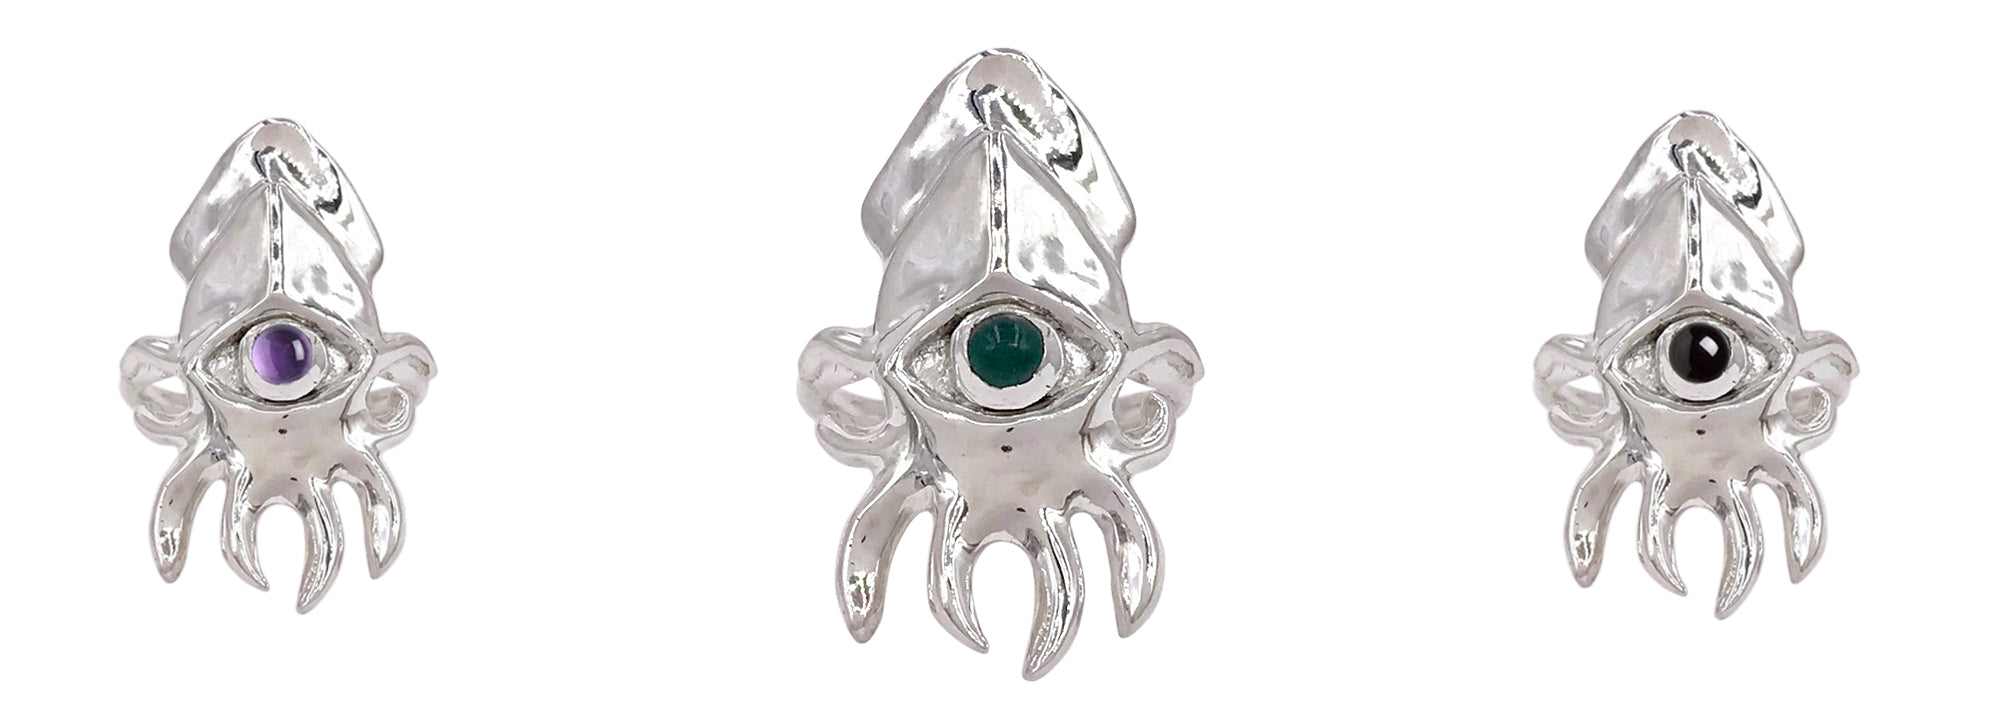 Oracle Squid Ring by Lauren YS x Morgan Patricia Designs